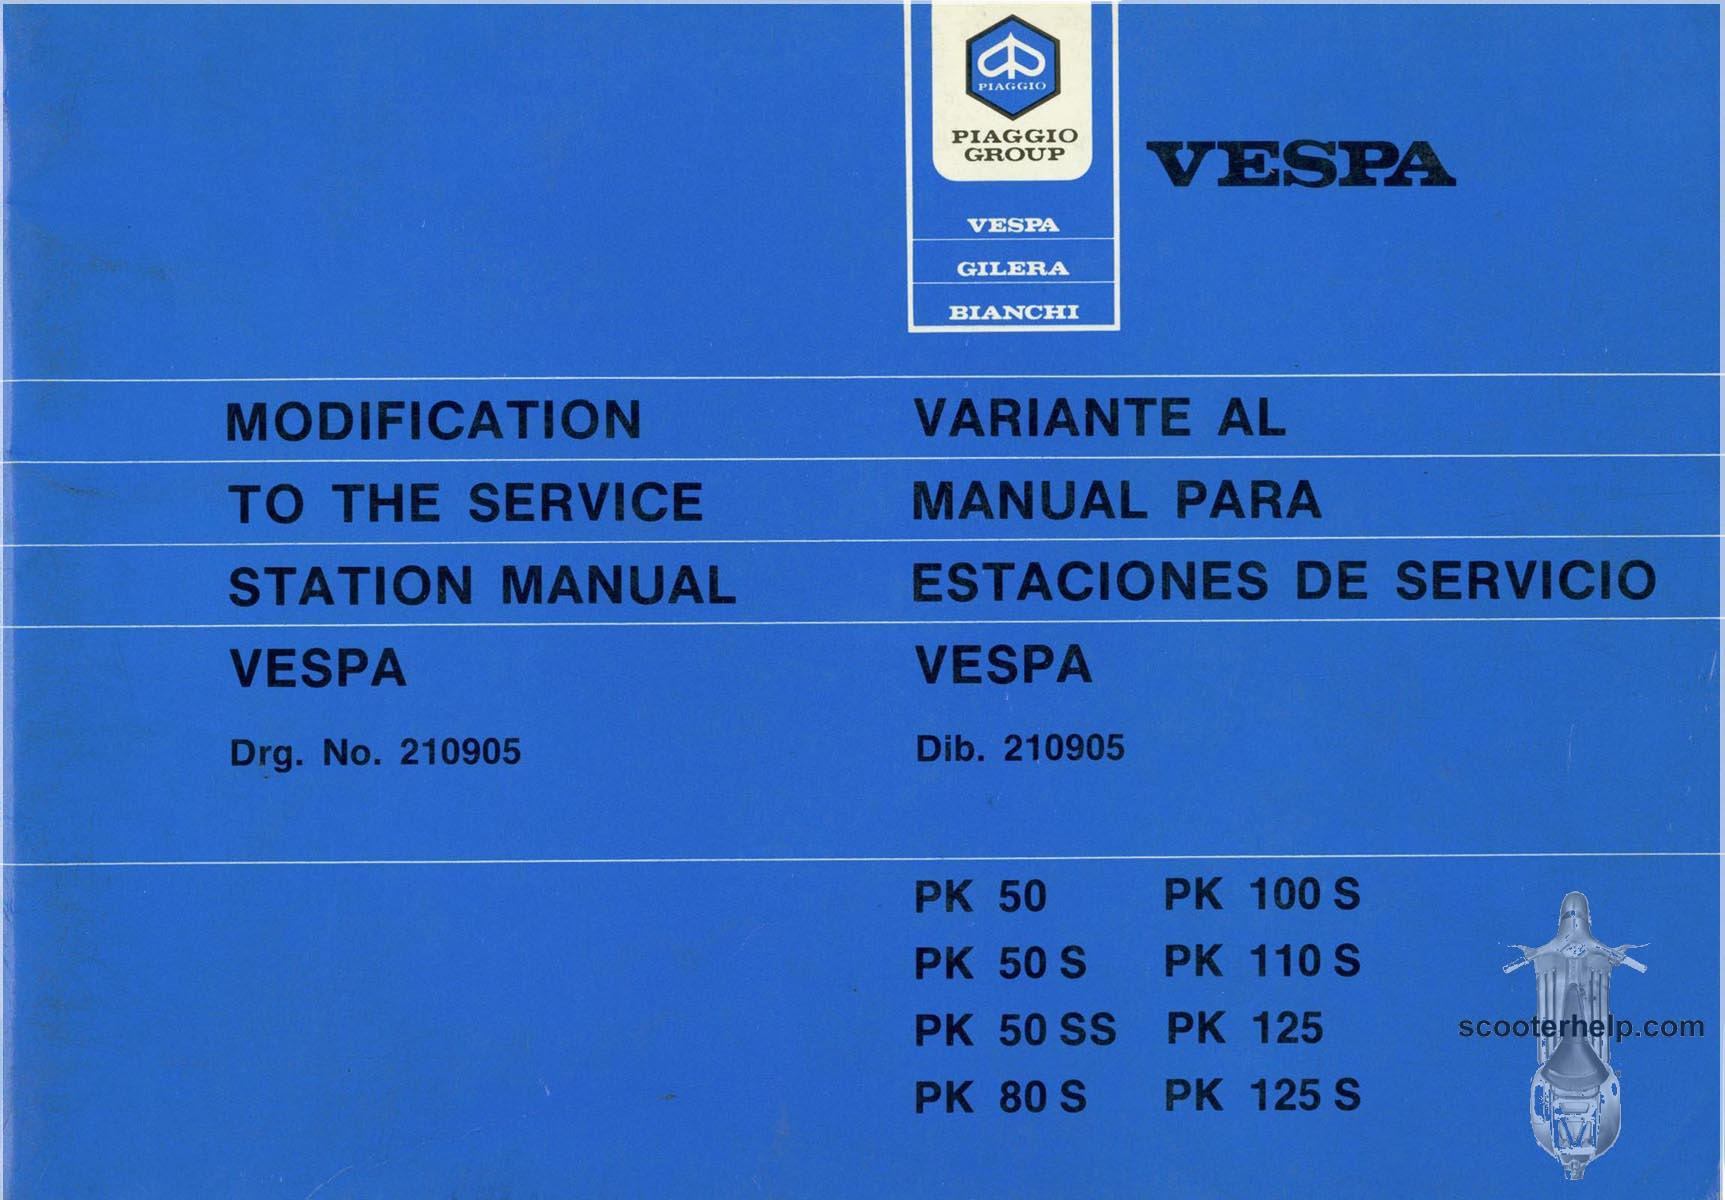 pk factory repair manual rh scooterhelp com service manual vespa primavera 125 service manual vespa lx 125